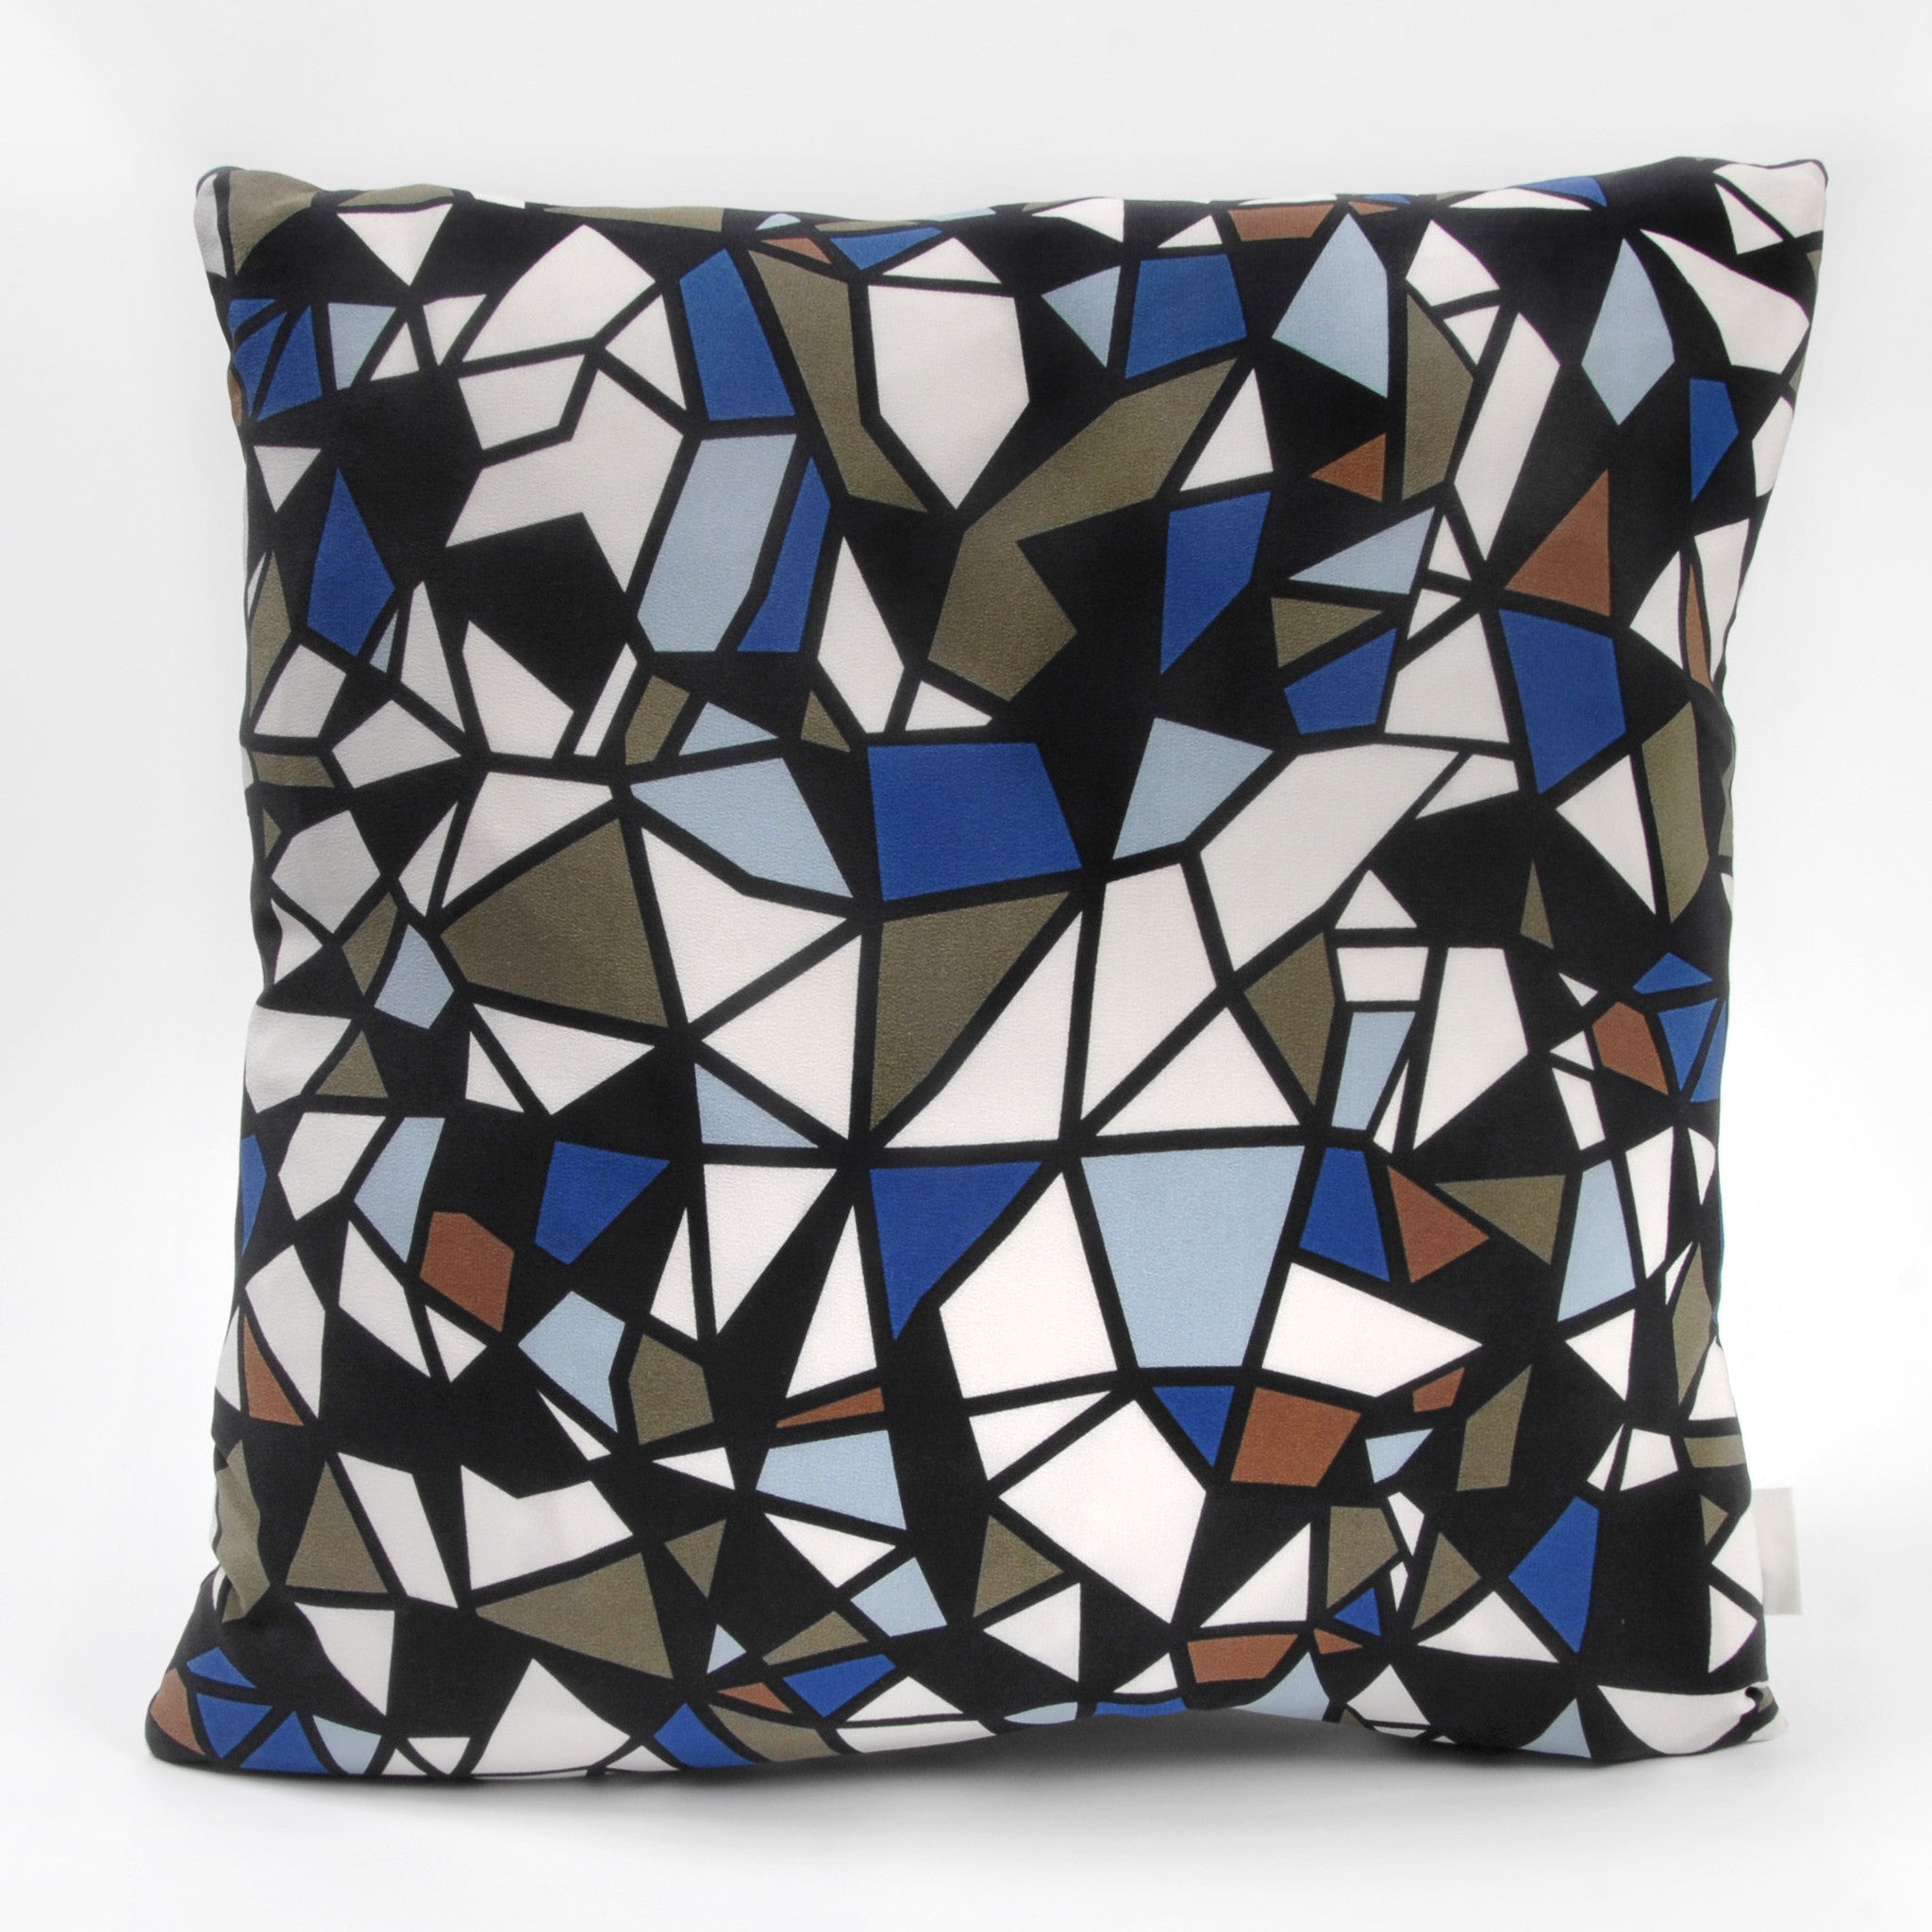 Juliette Hogan Cushion Cover Image